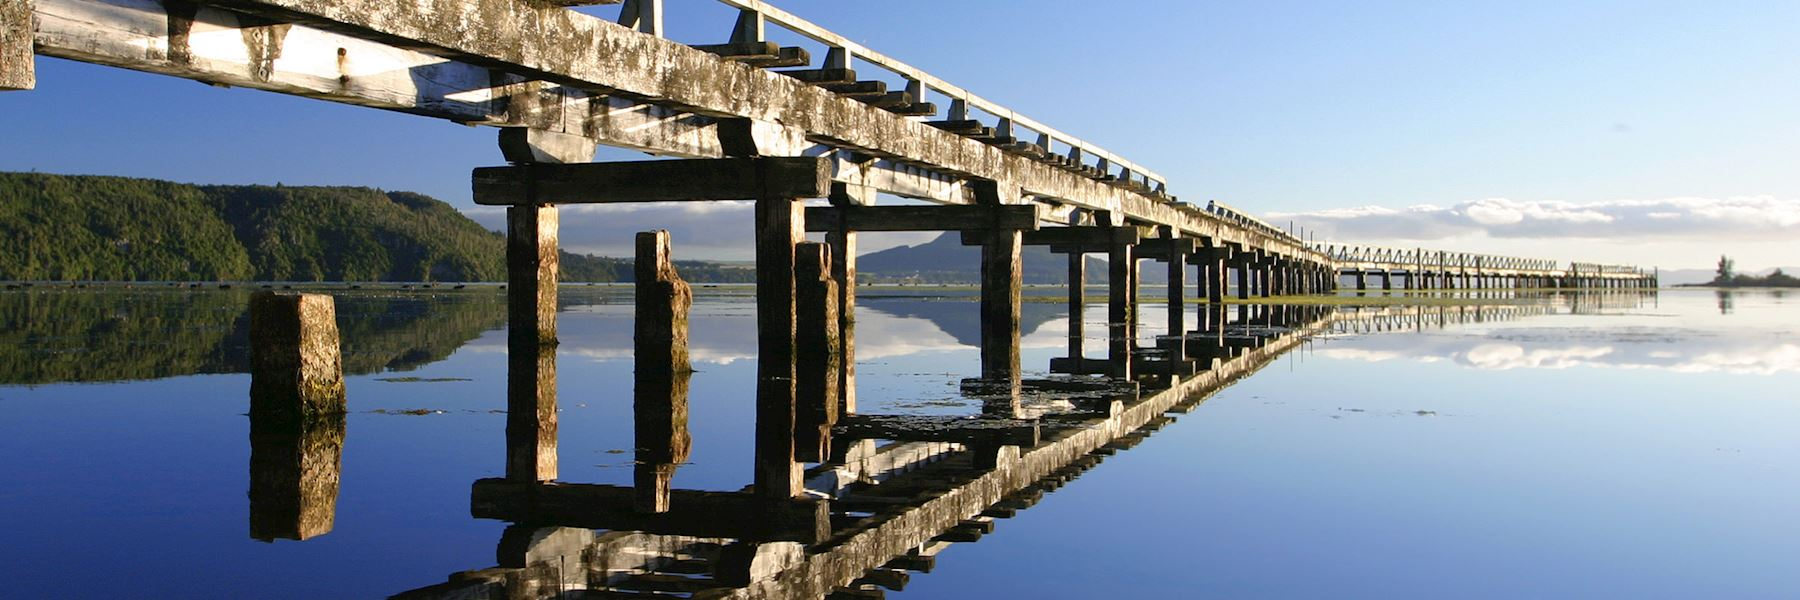 Visit lake taupo on a trip to new zealand audley travel for Minimalist house lake taupo